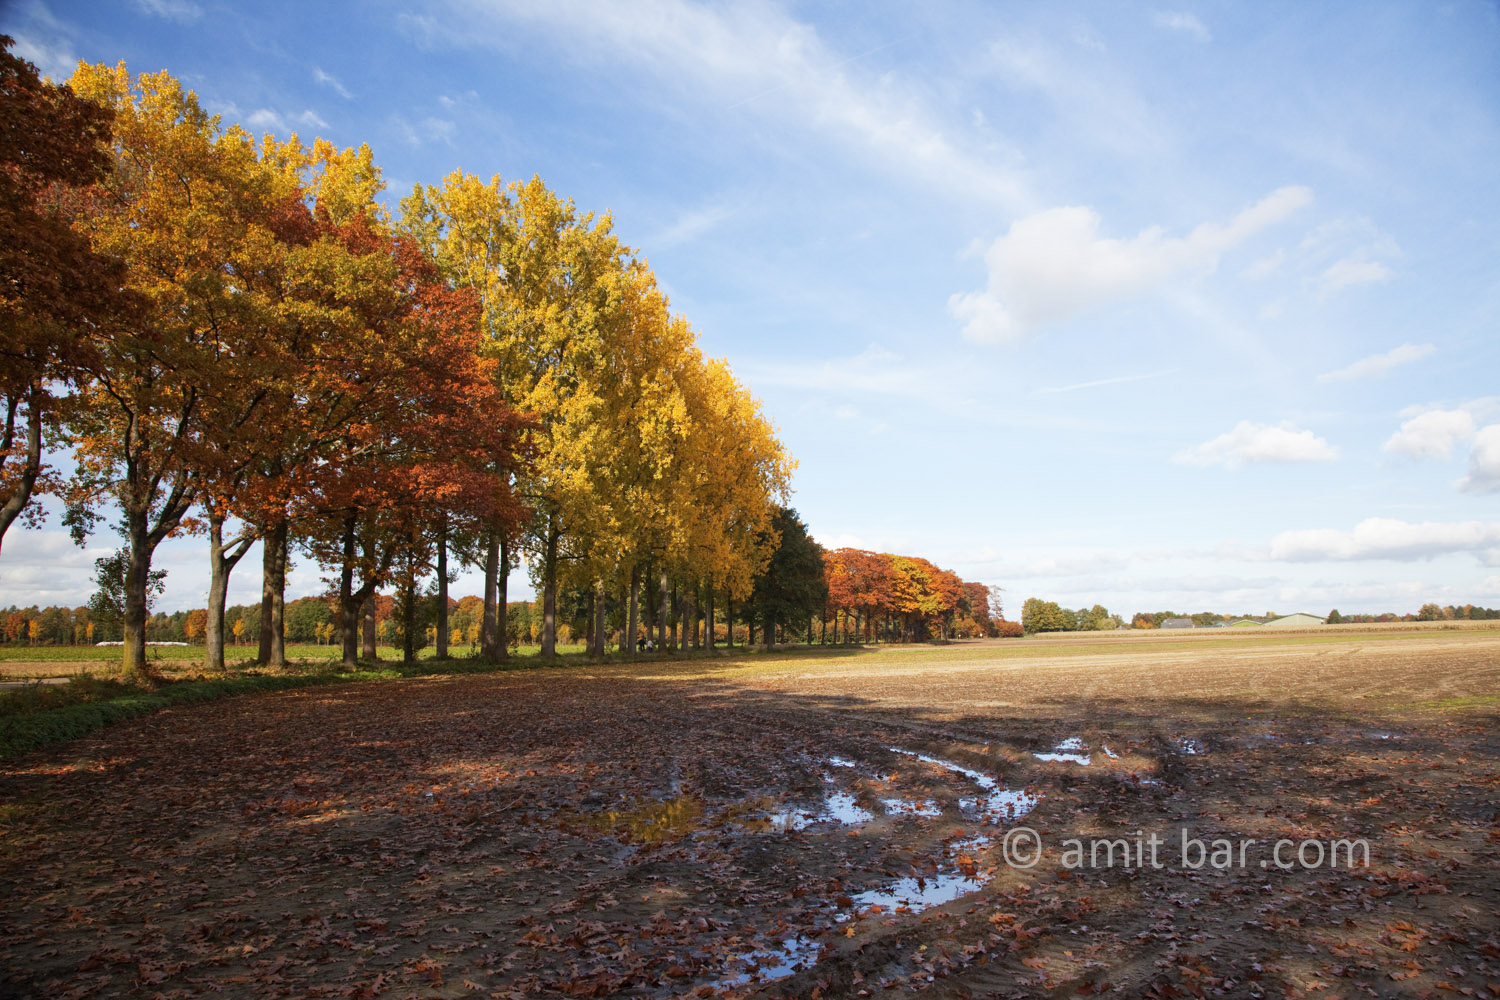 Autumn trees I: Autumn in De Achterhoek, The Netherlands